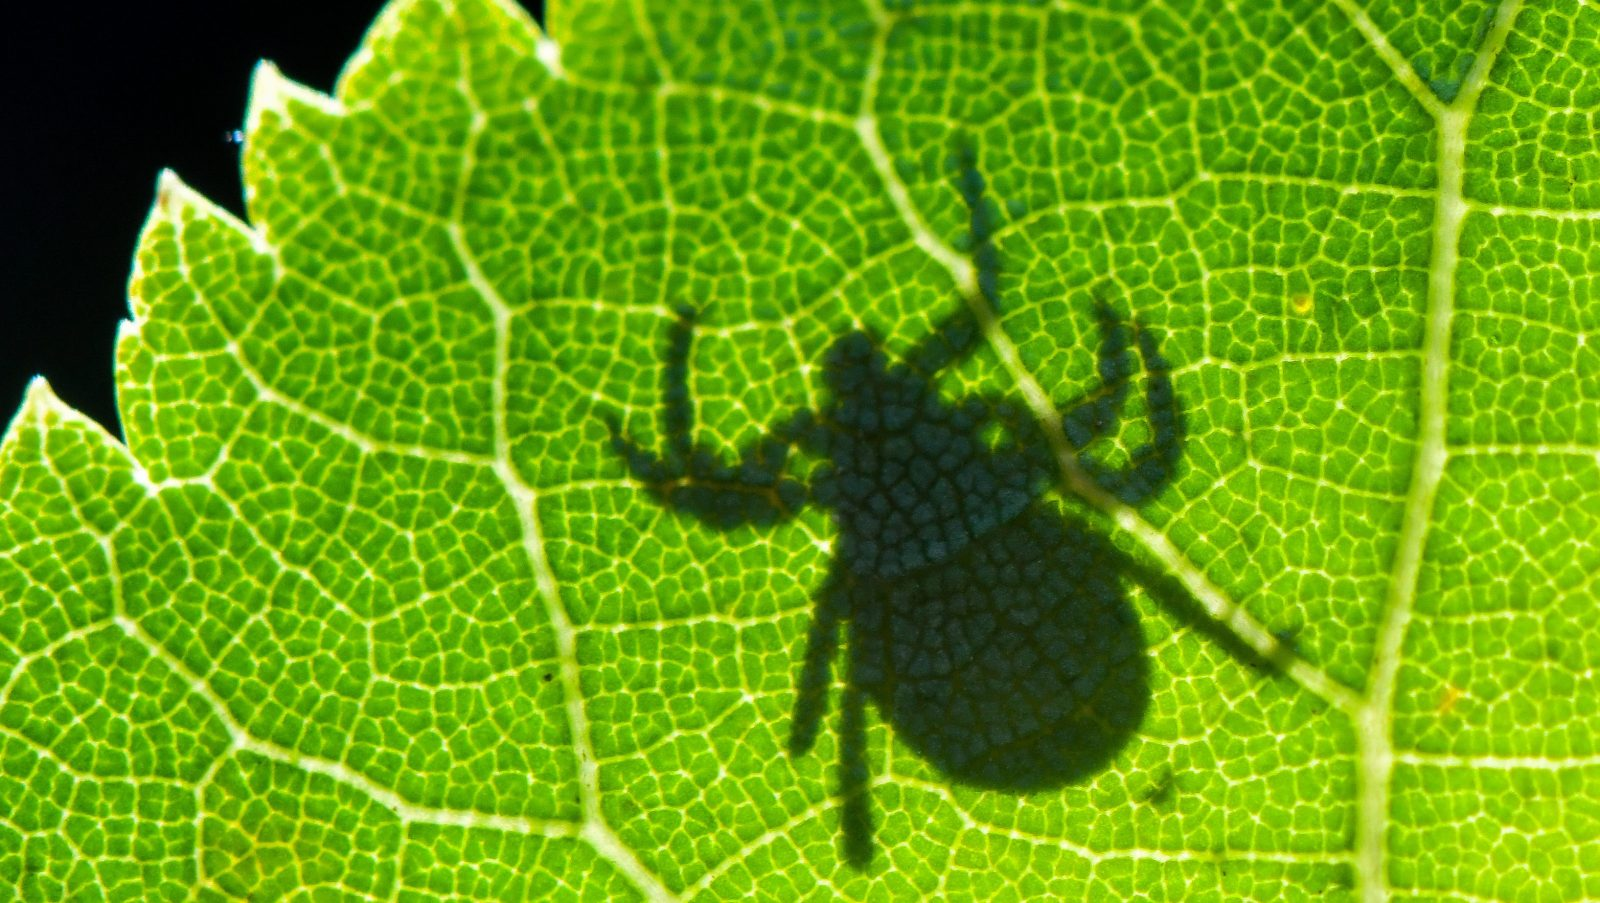 The shadow of a tick appears on a green leaf.